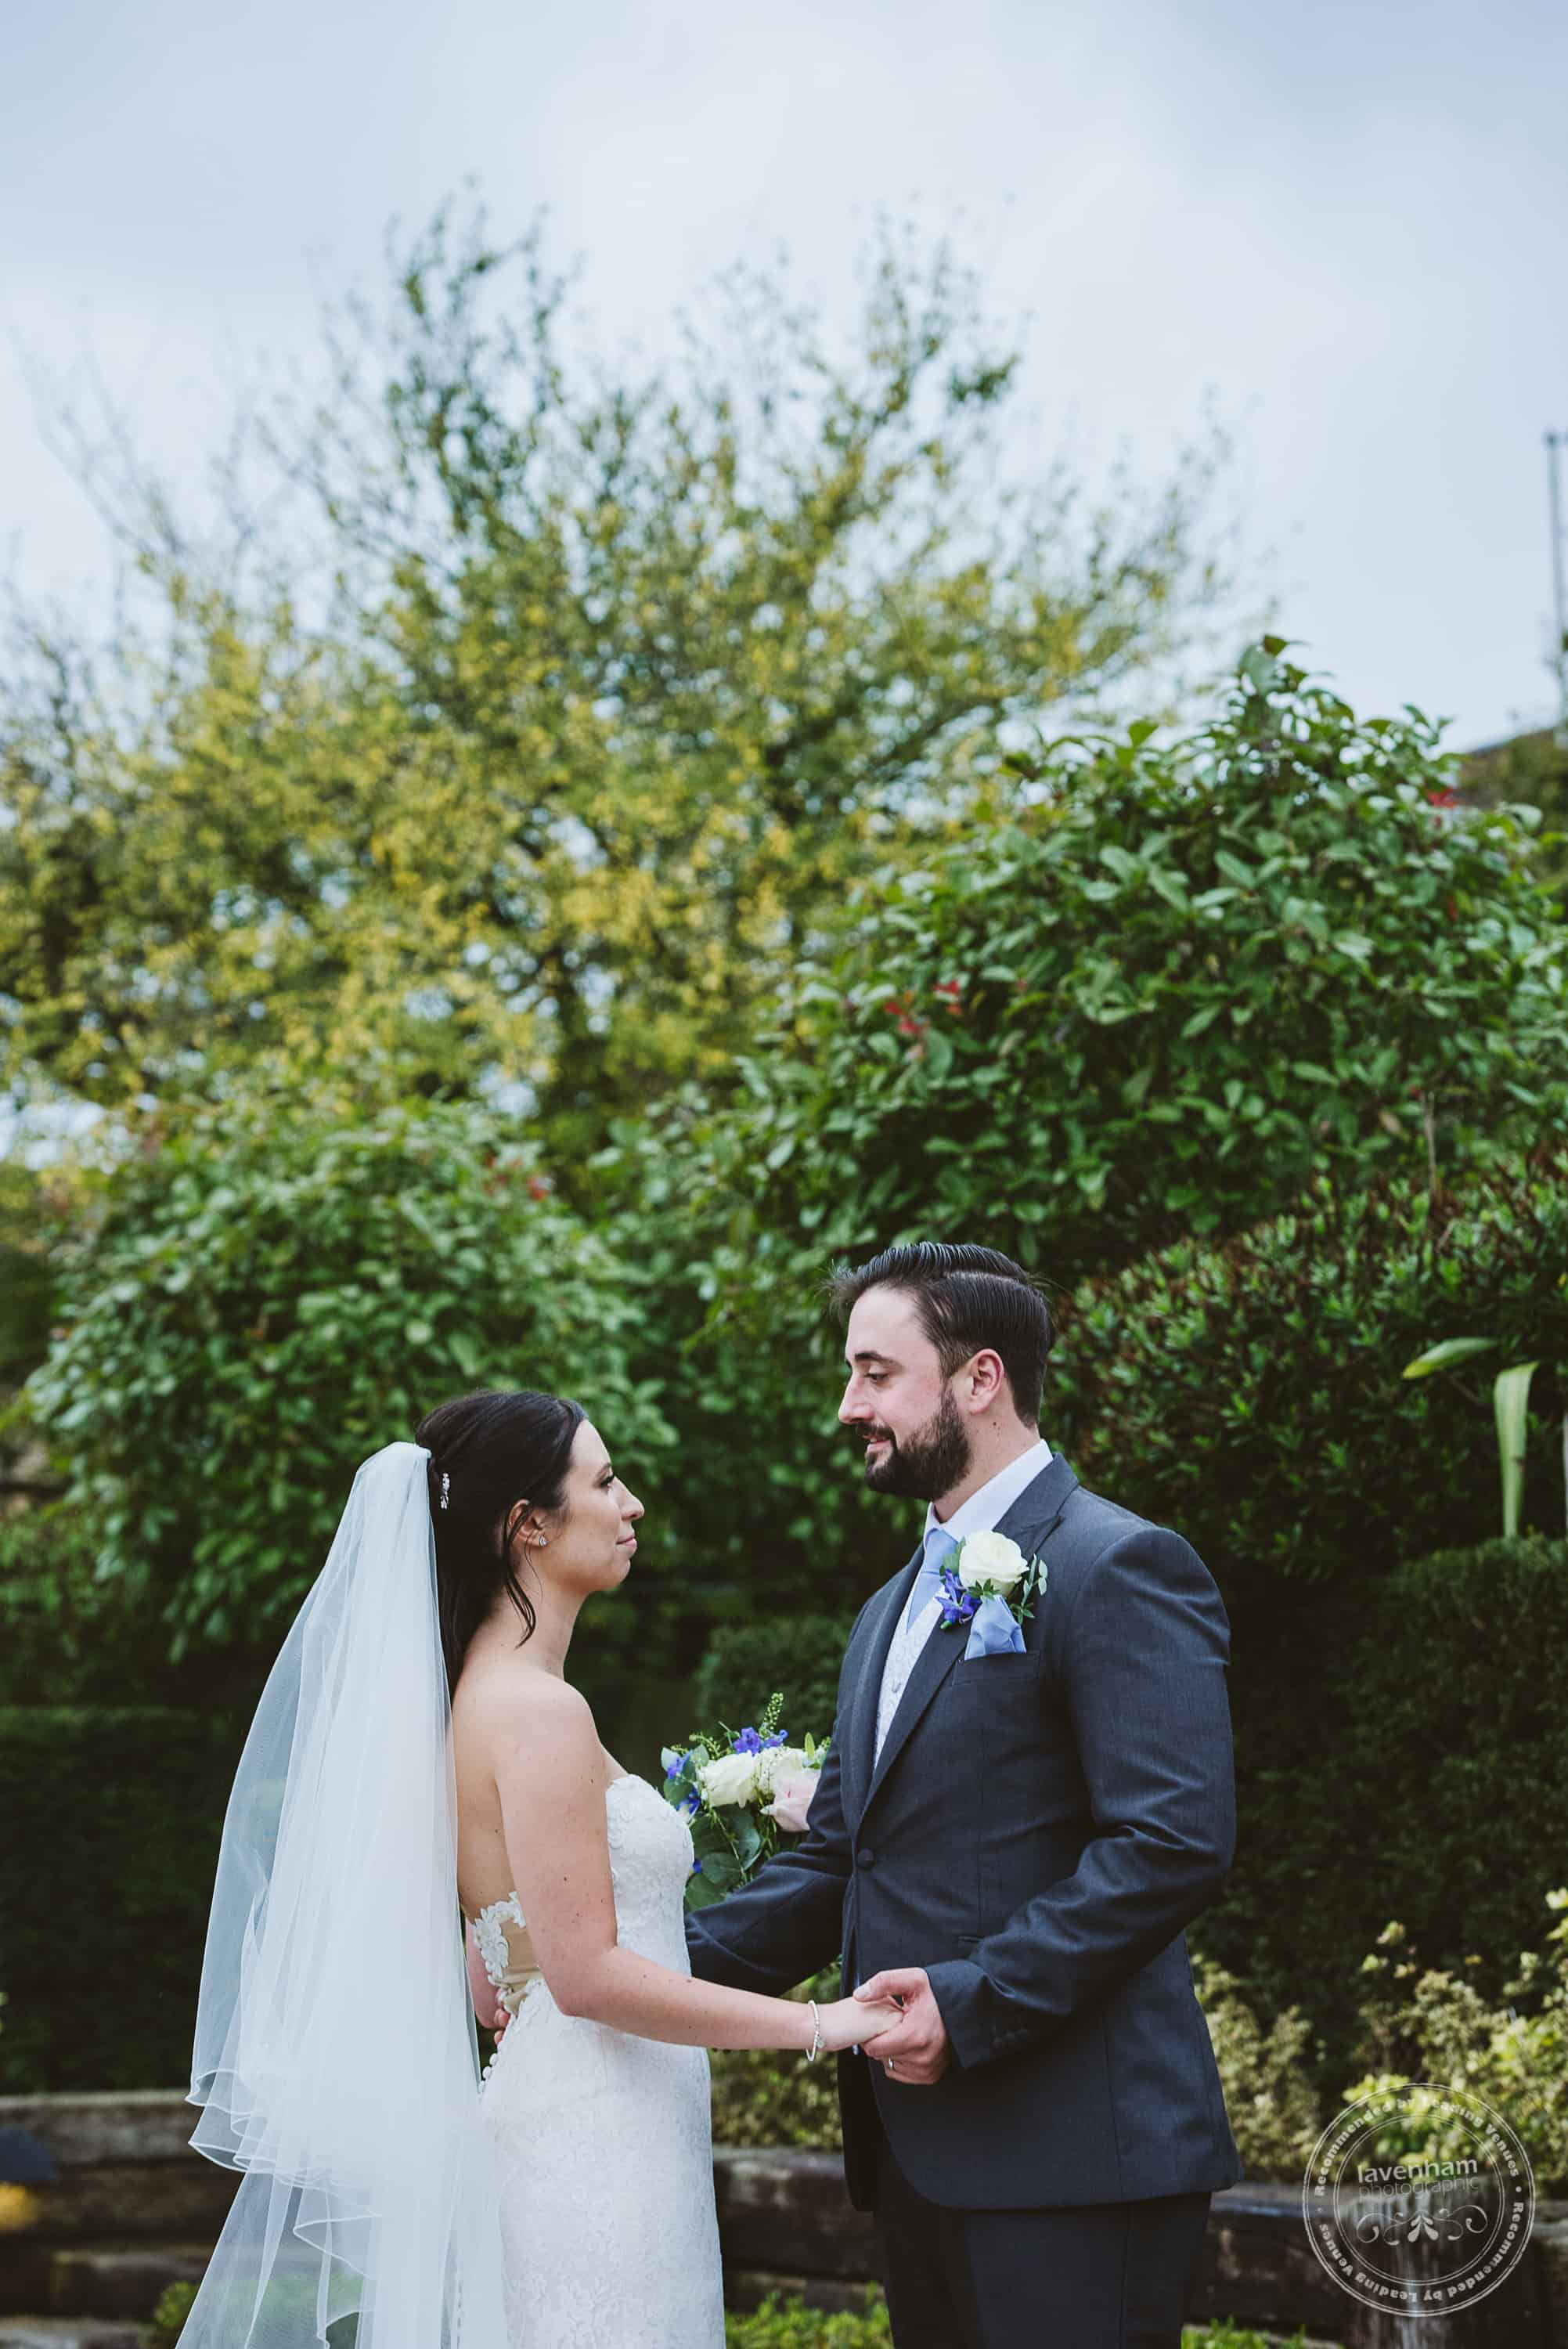 261019 Bull and Willow Room Essex Wedding Photographer 067